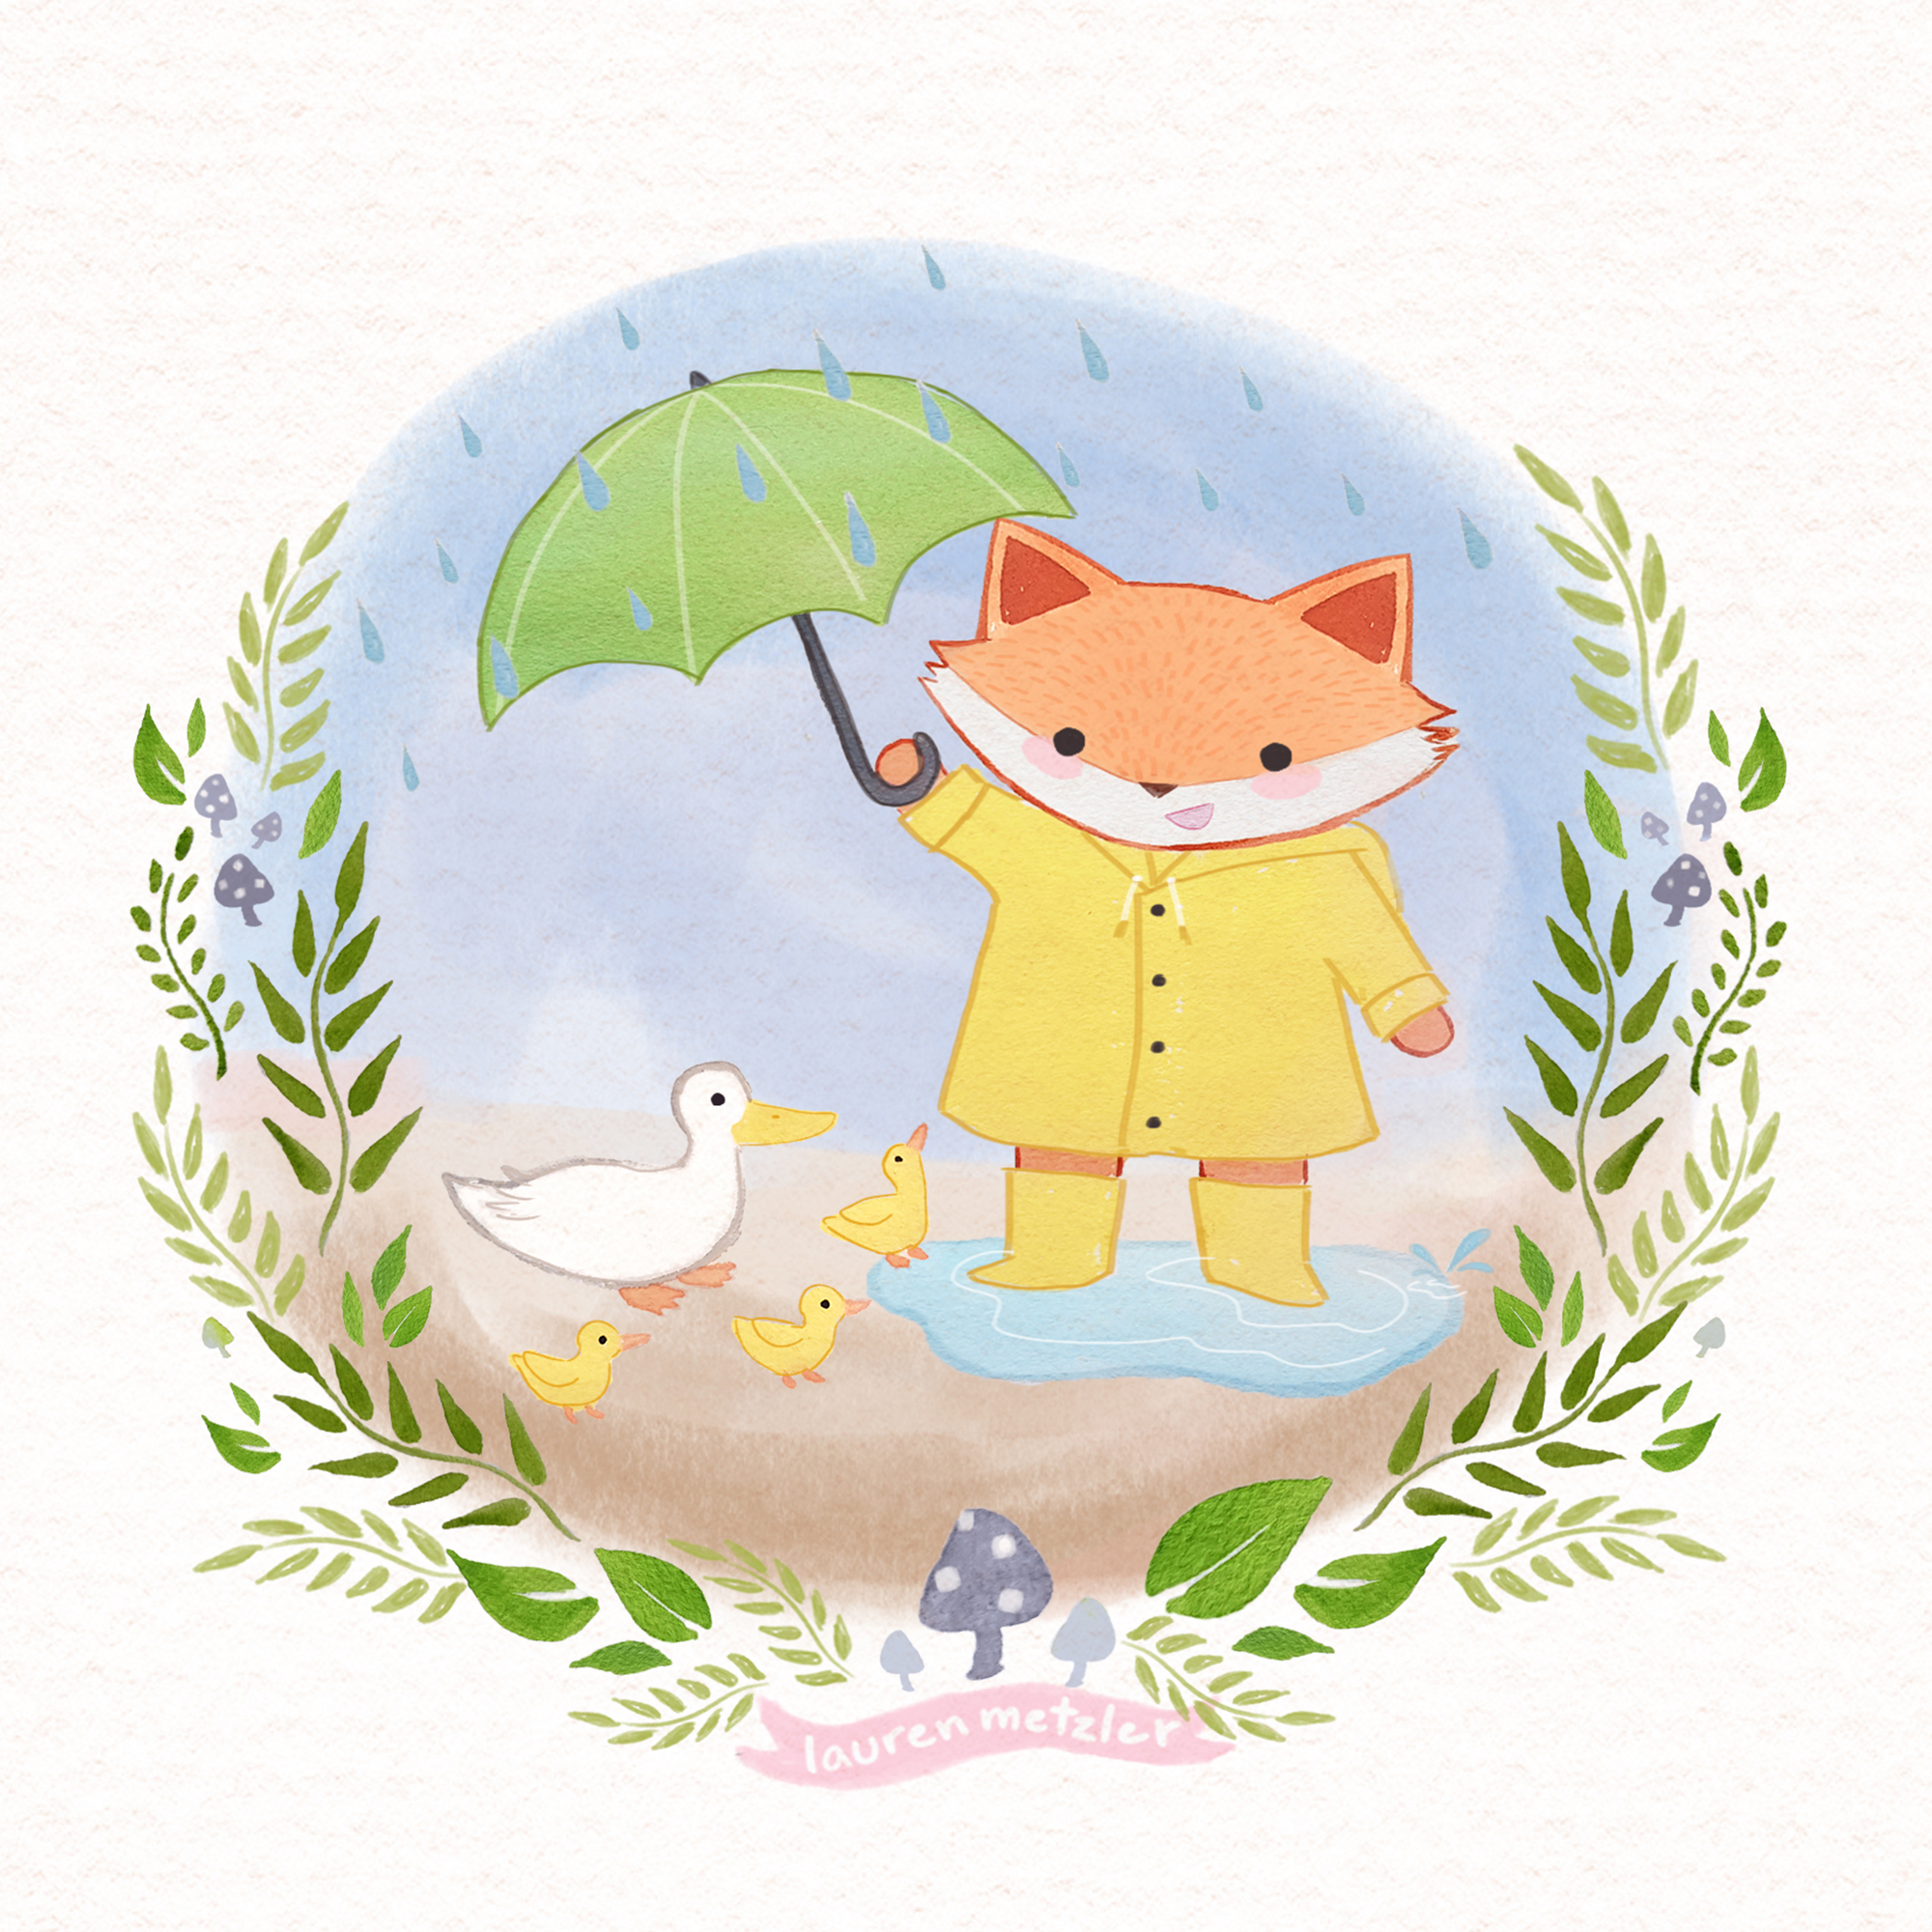 U is for Umbrella Forest Friends ABC book by Lauren Metzler. See more at laurenmetzler.com